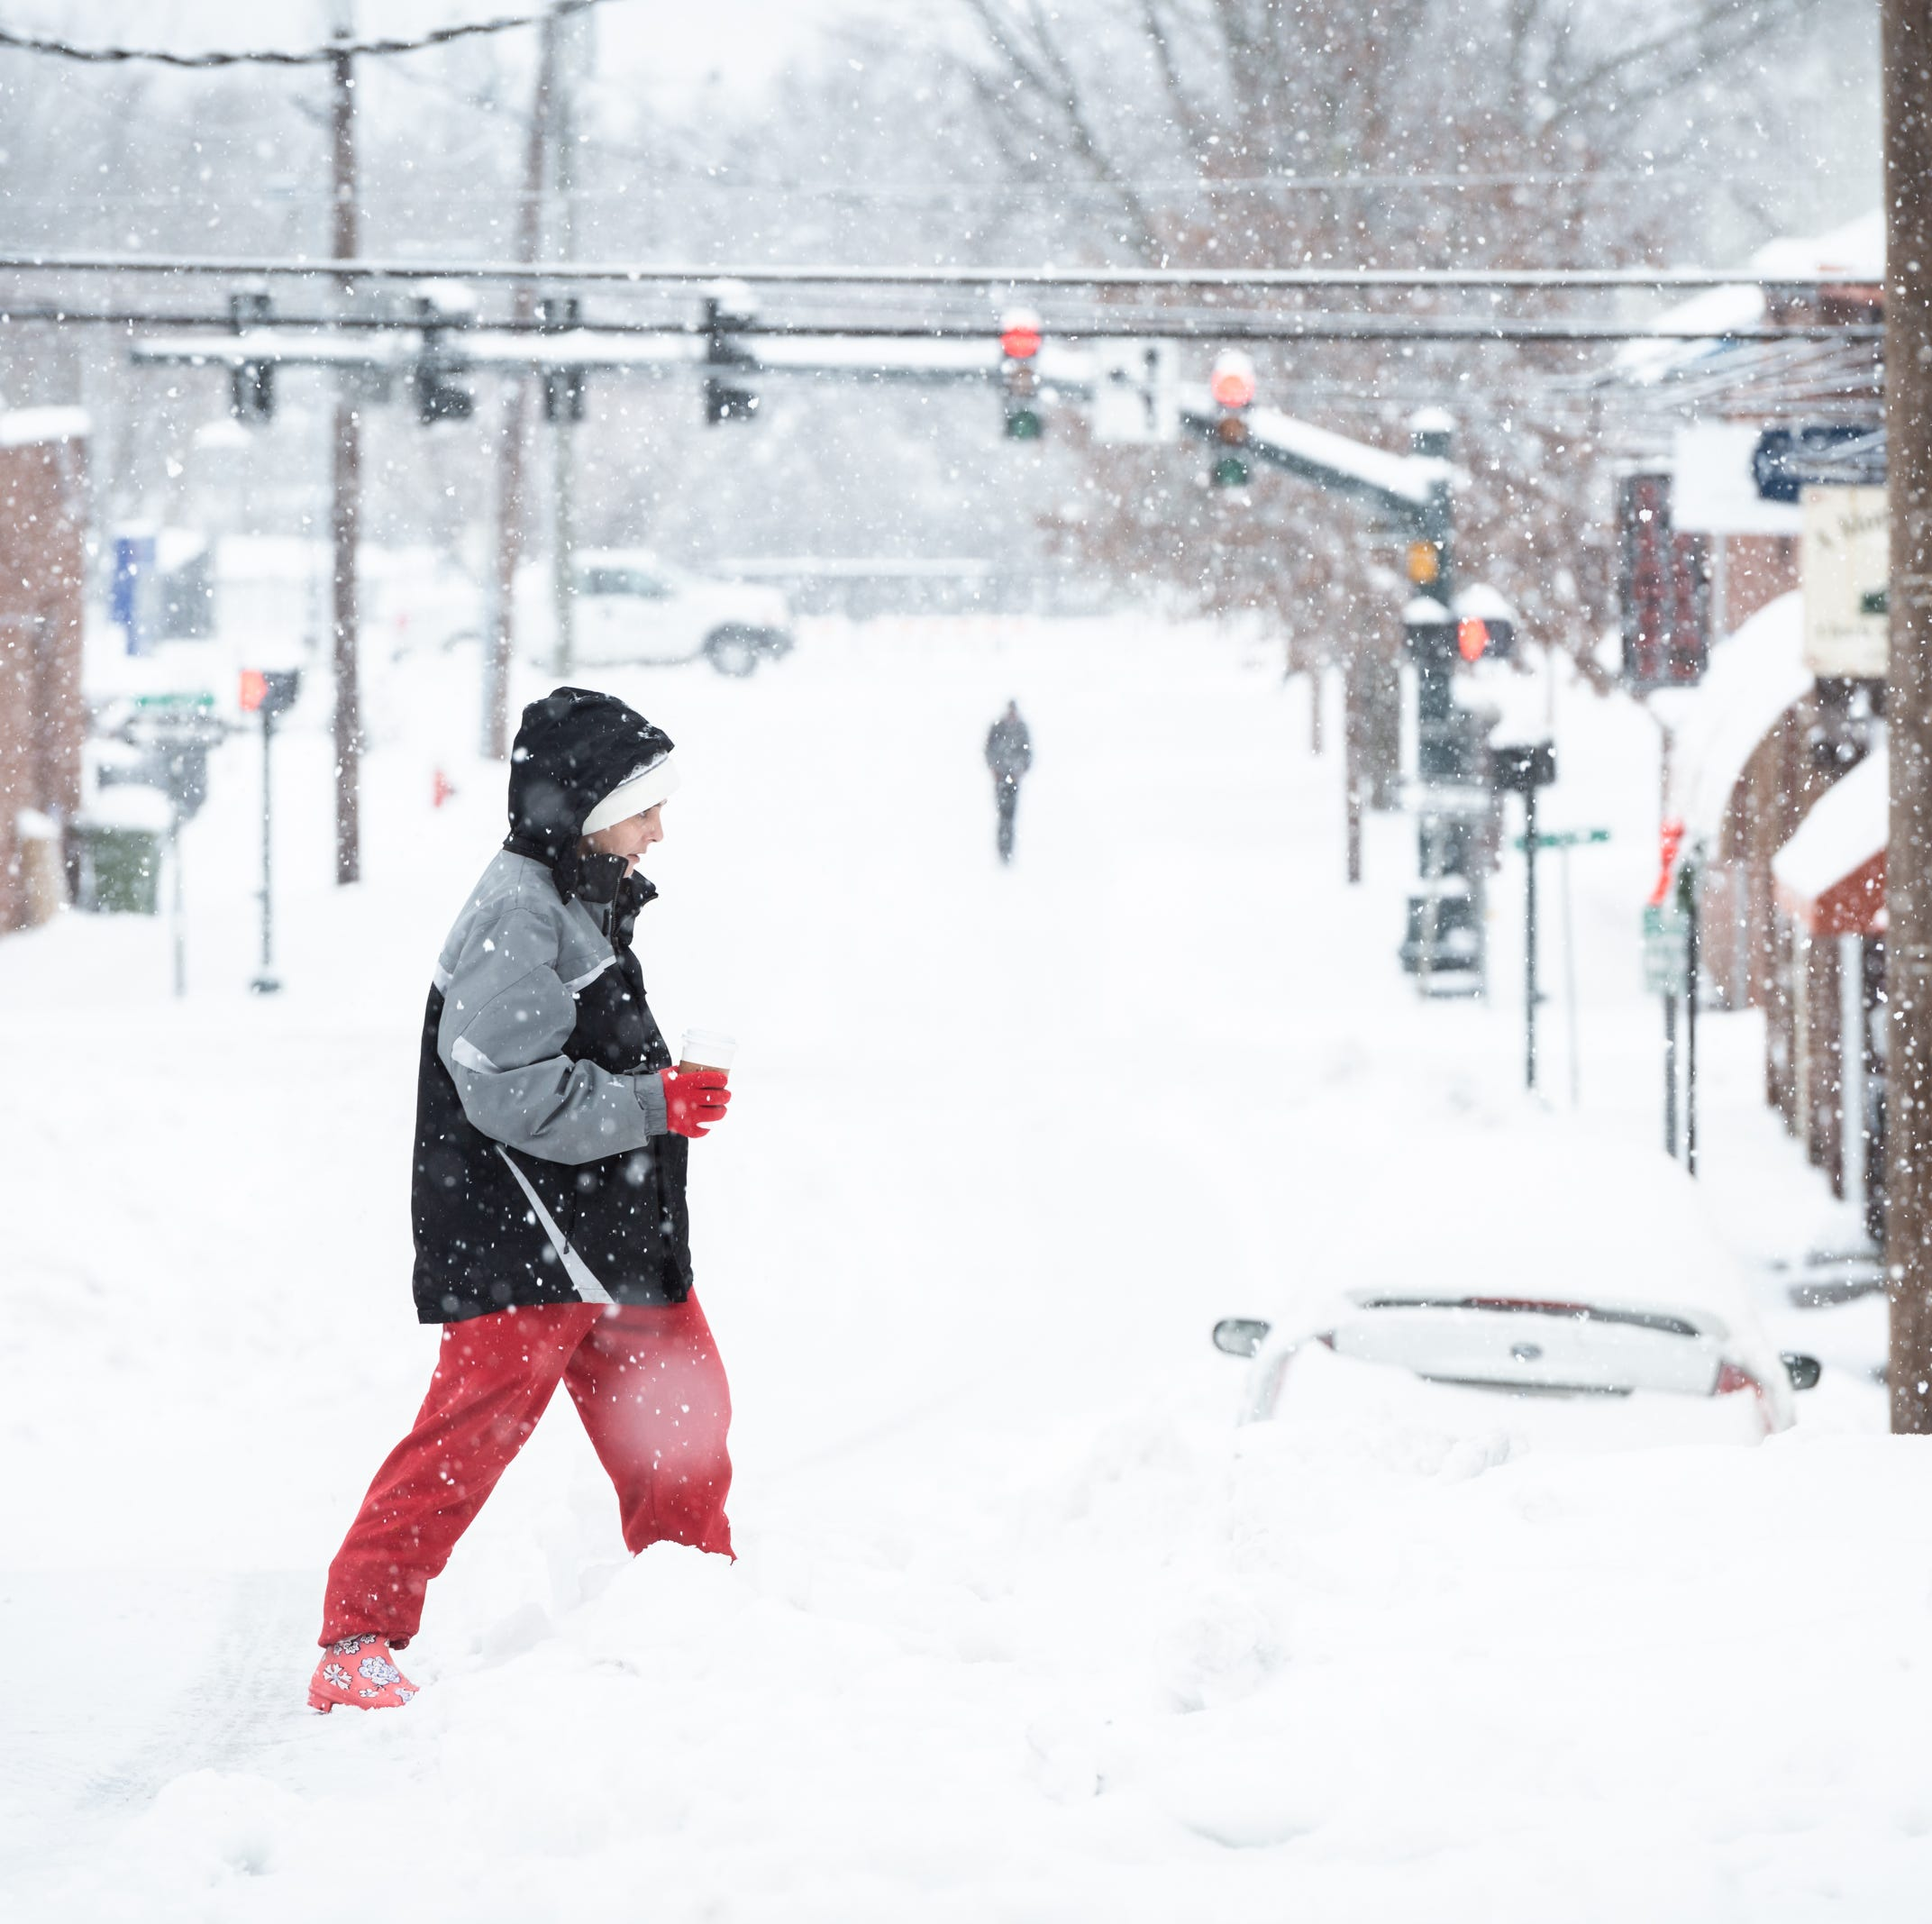 Snow totals: 11 inches in Asheville, over 18 inches in parts of WNC — National Weather Service